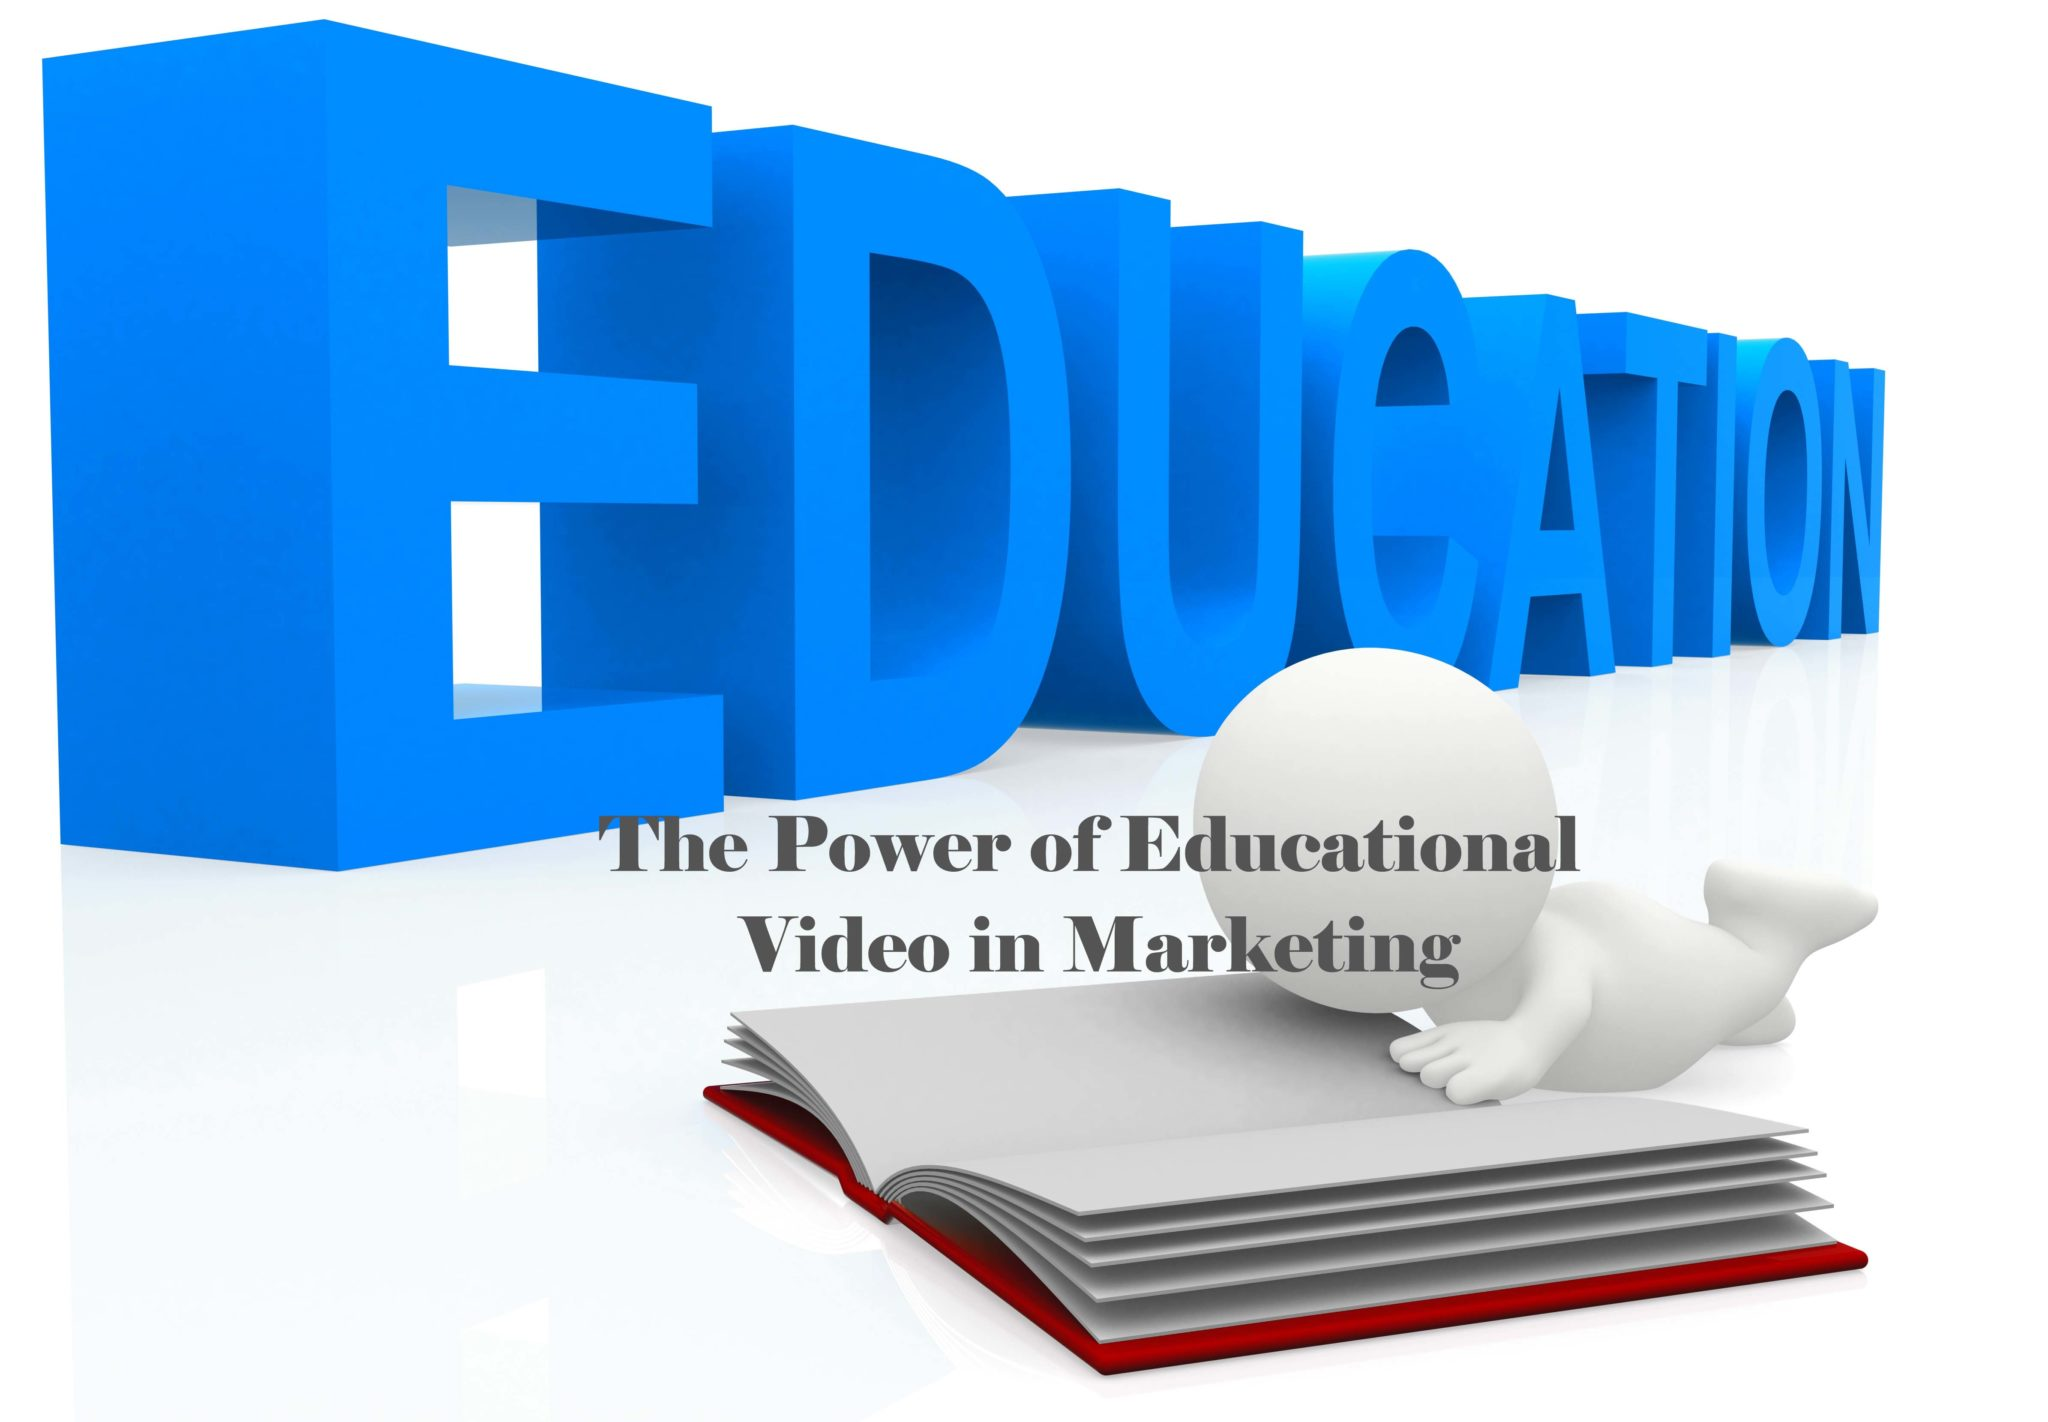 The Power of Educational